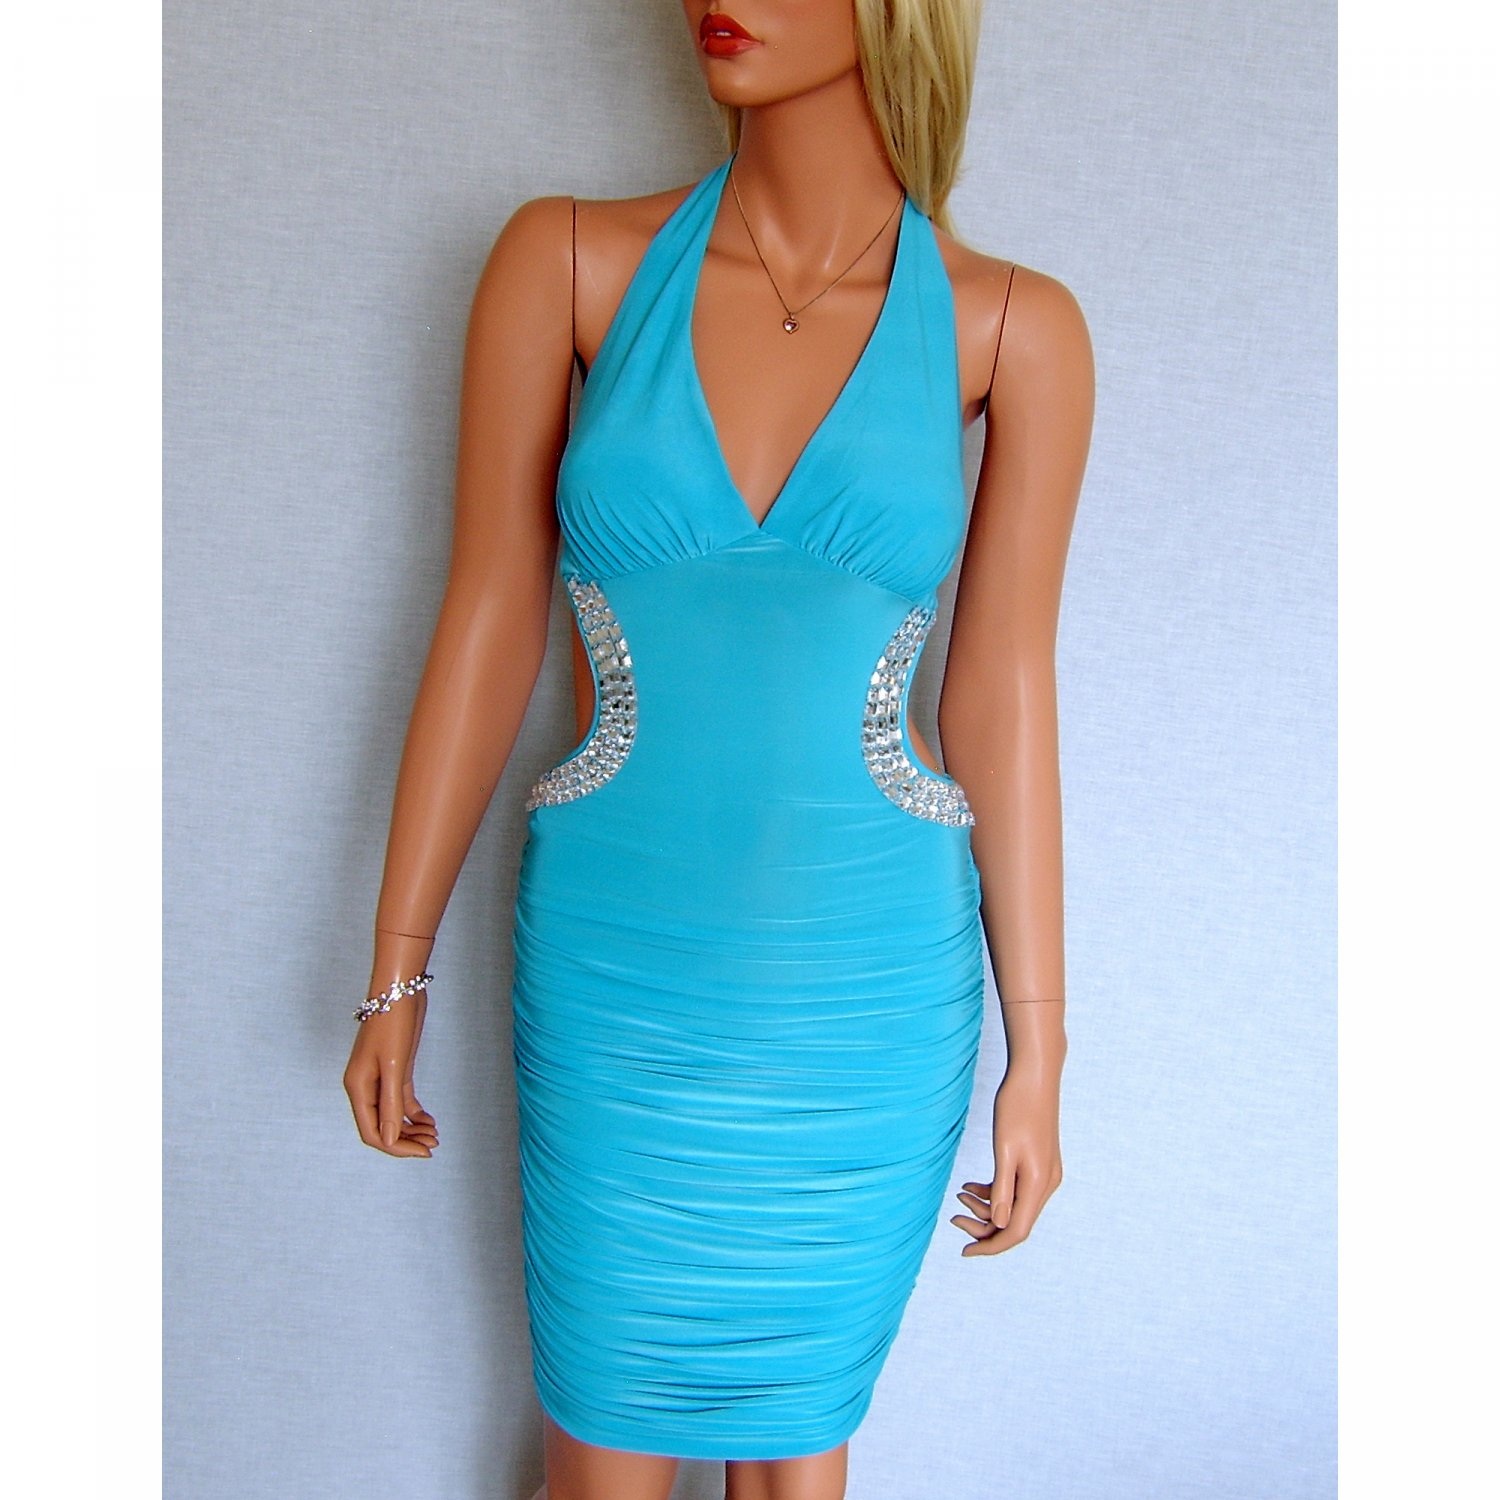 TURQUOISE BLUE BACKLESS JEWEL HALTERNECK EVENING MINI CLUBWEAR BODYCON PARTY DRESS UK 12-14, US 8-10